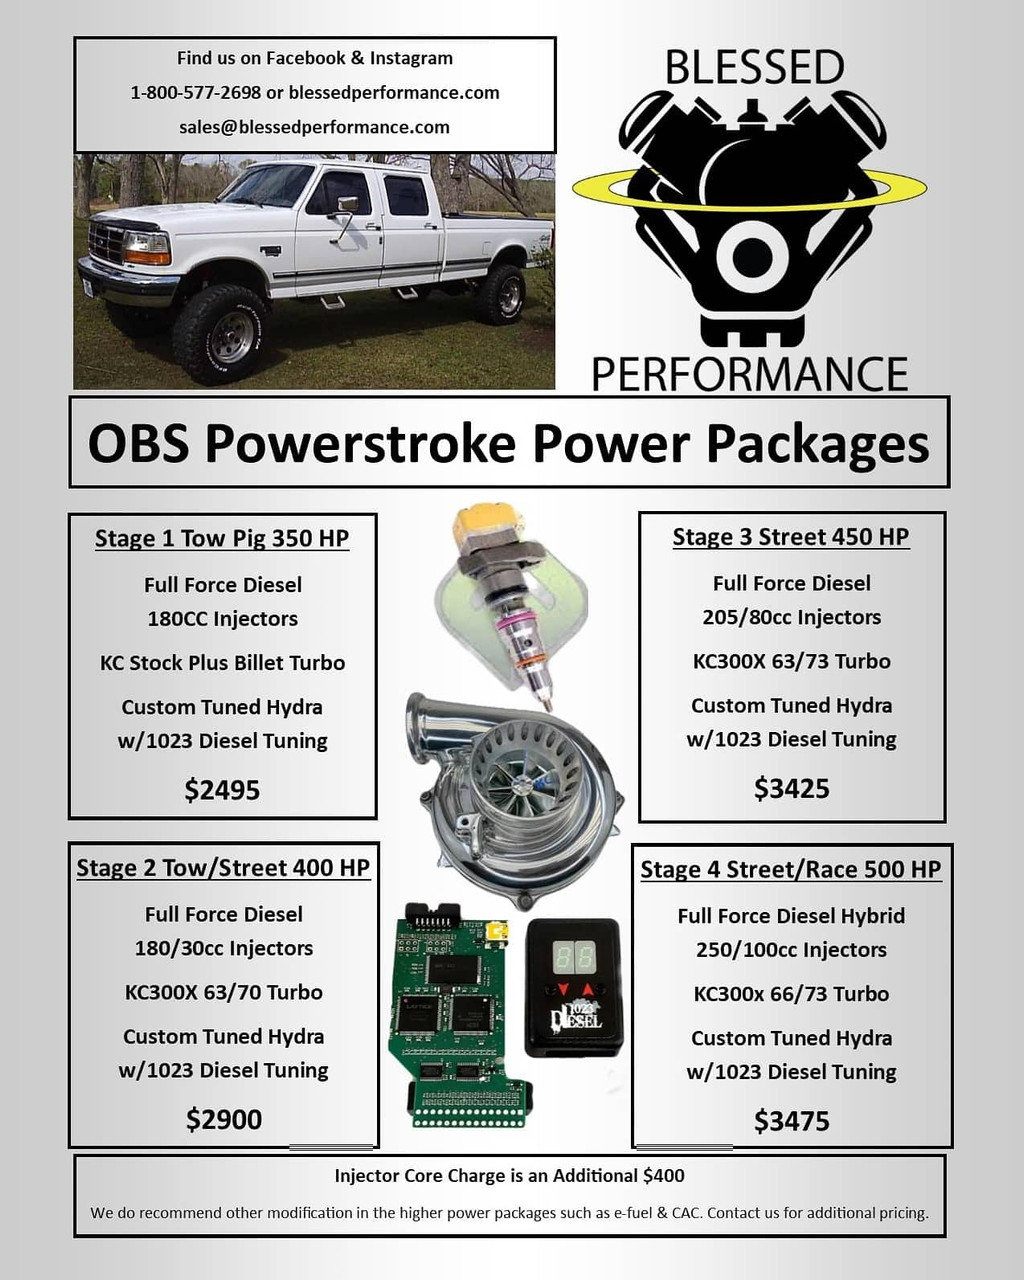 Blessed Performance Superduty 7.3 Powerstroke Packages